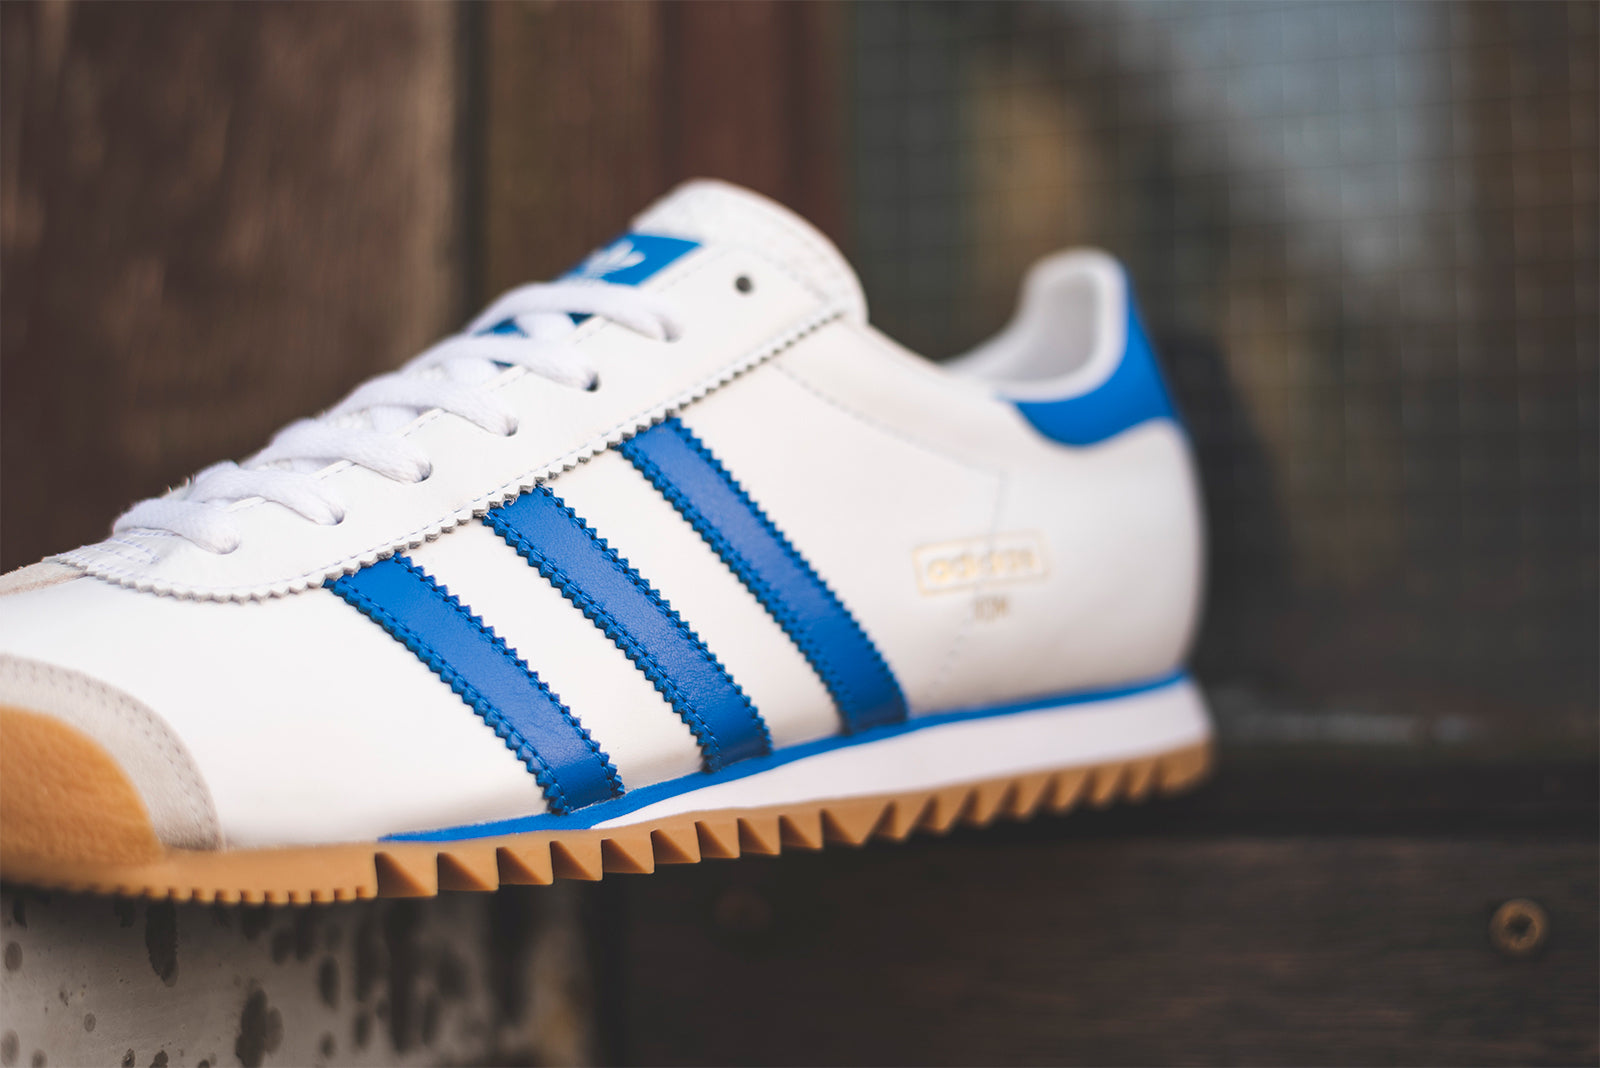 96a037e950a7b5 adidas Rom EE4941 Footwear White   Royal Blue   Gum Price  £85.00. Launch   Friday 1st of March ONLINE  23 00 GMT